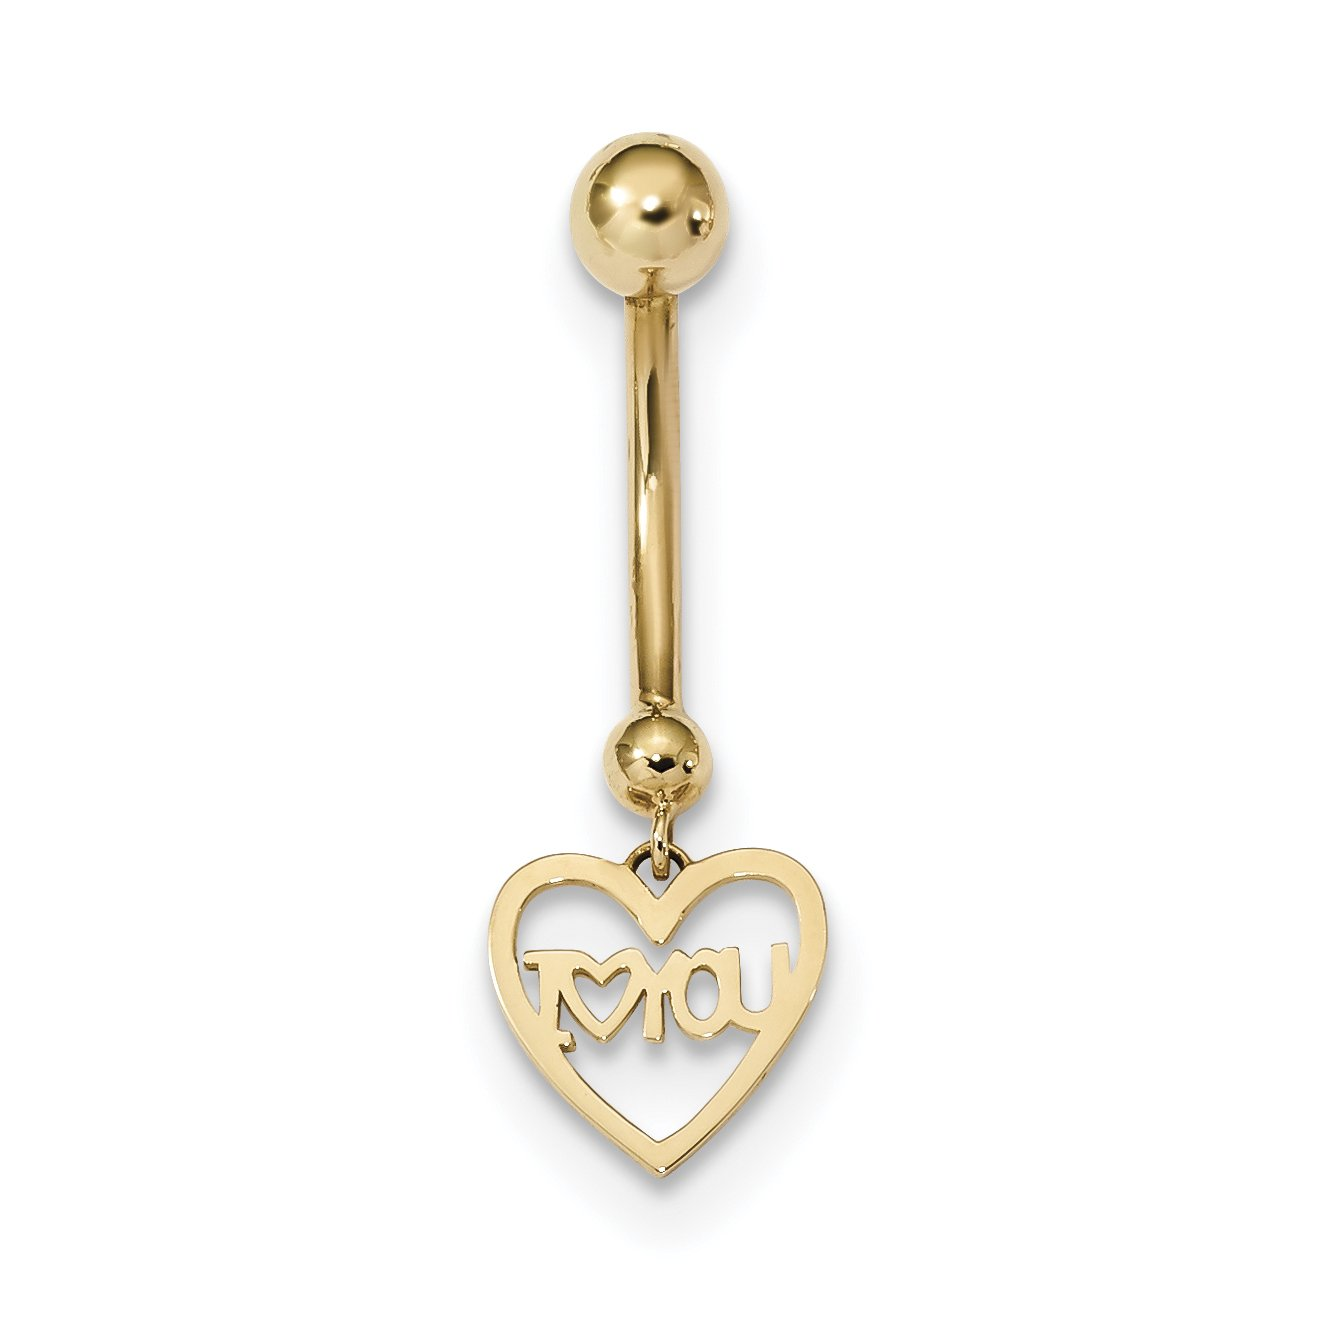 ICE CARATS 14k Yellow Gold I Heart You Belly Band Ring Body Naval Fine Jewelry Gift Set For Women Heart